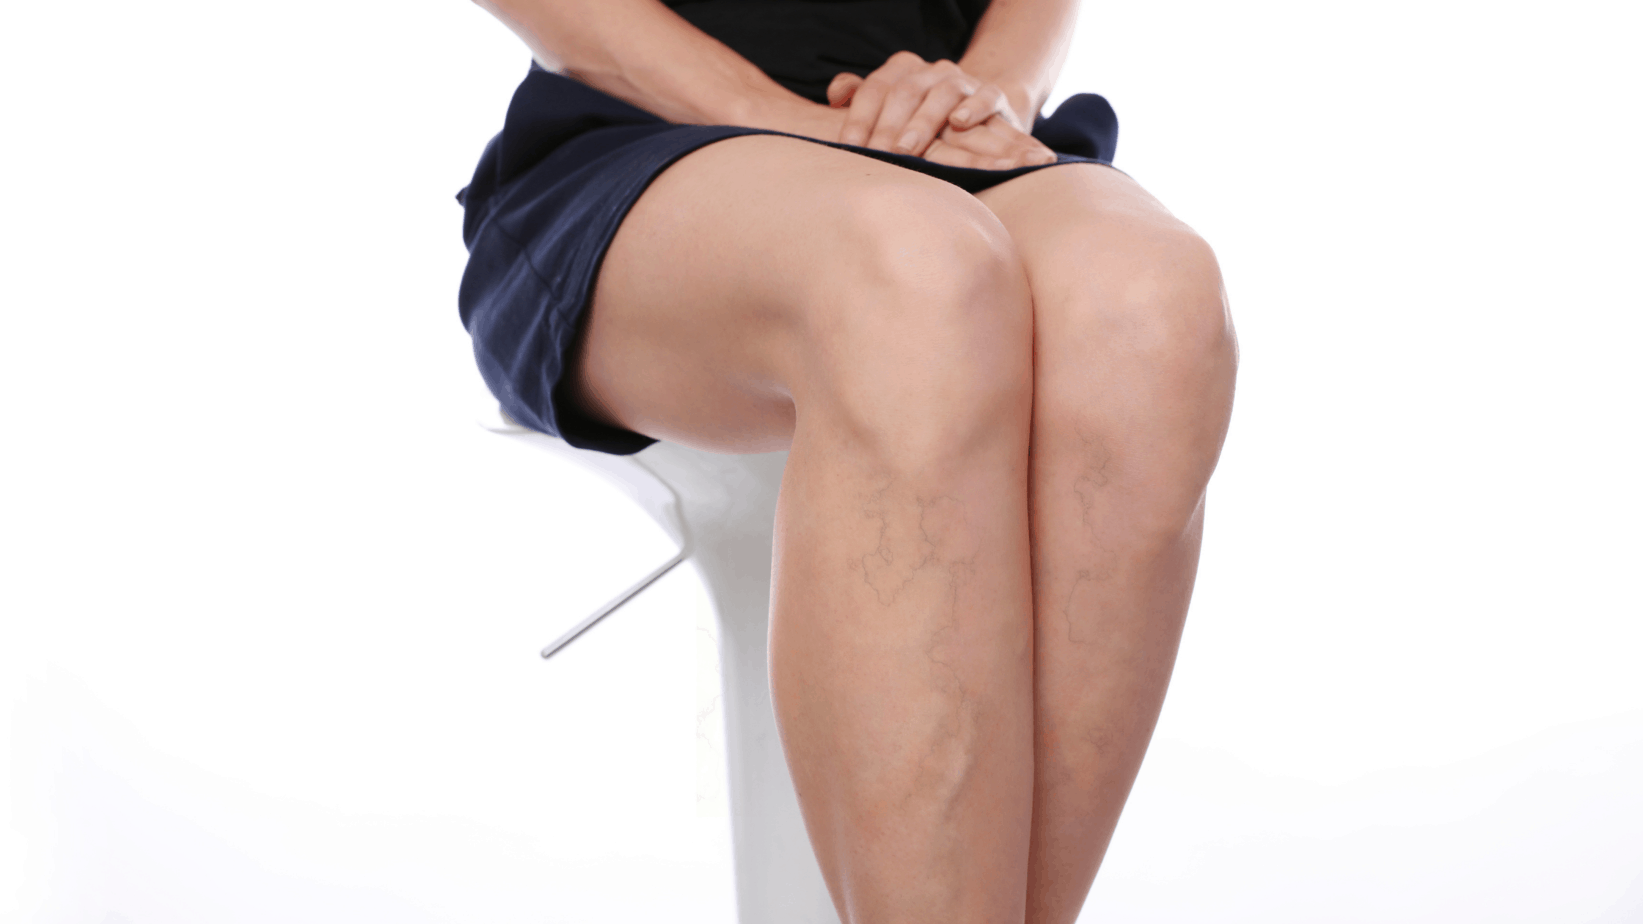 What is the cause of your varicose veins?